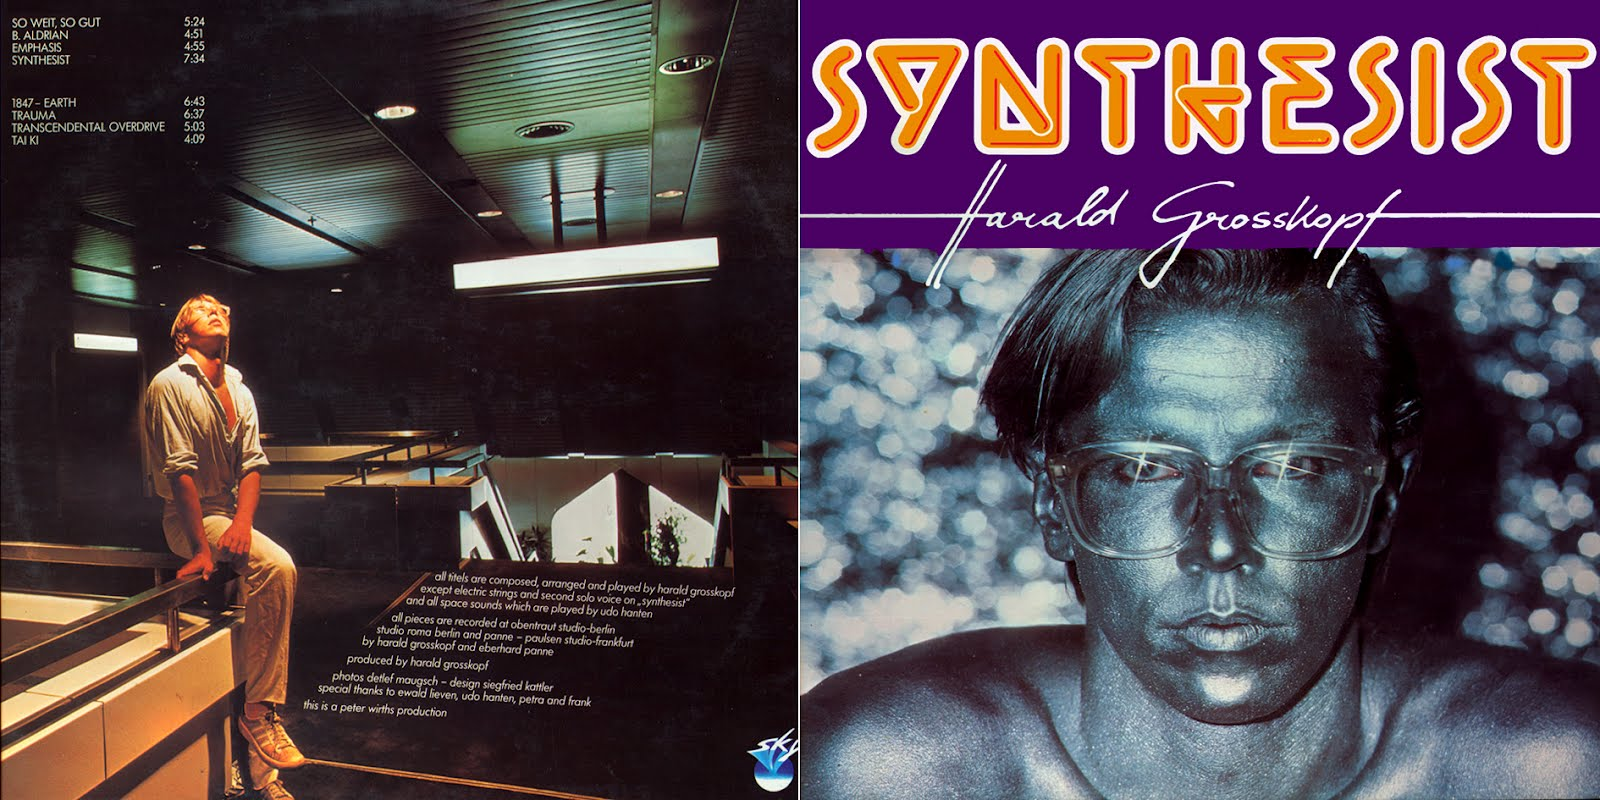 harald grosskopf - synthesist - remastered lp - 2011-bcc